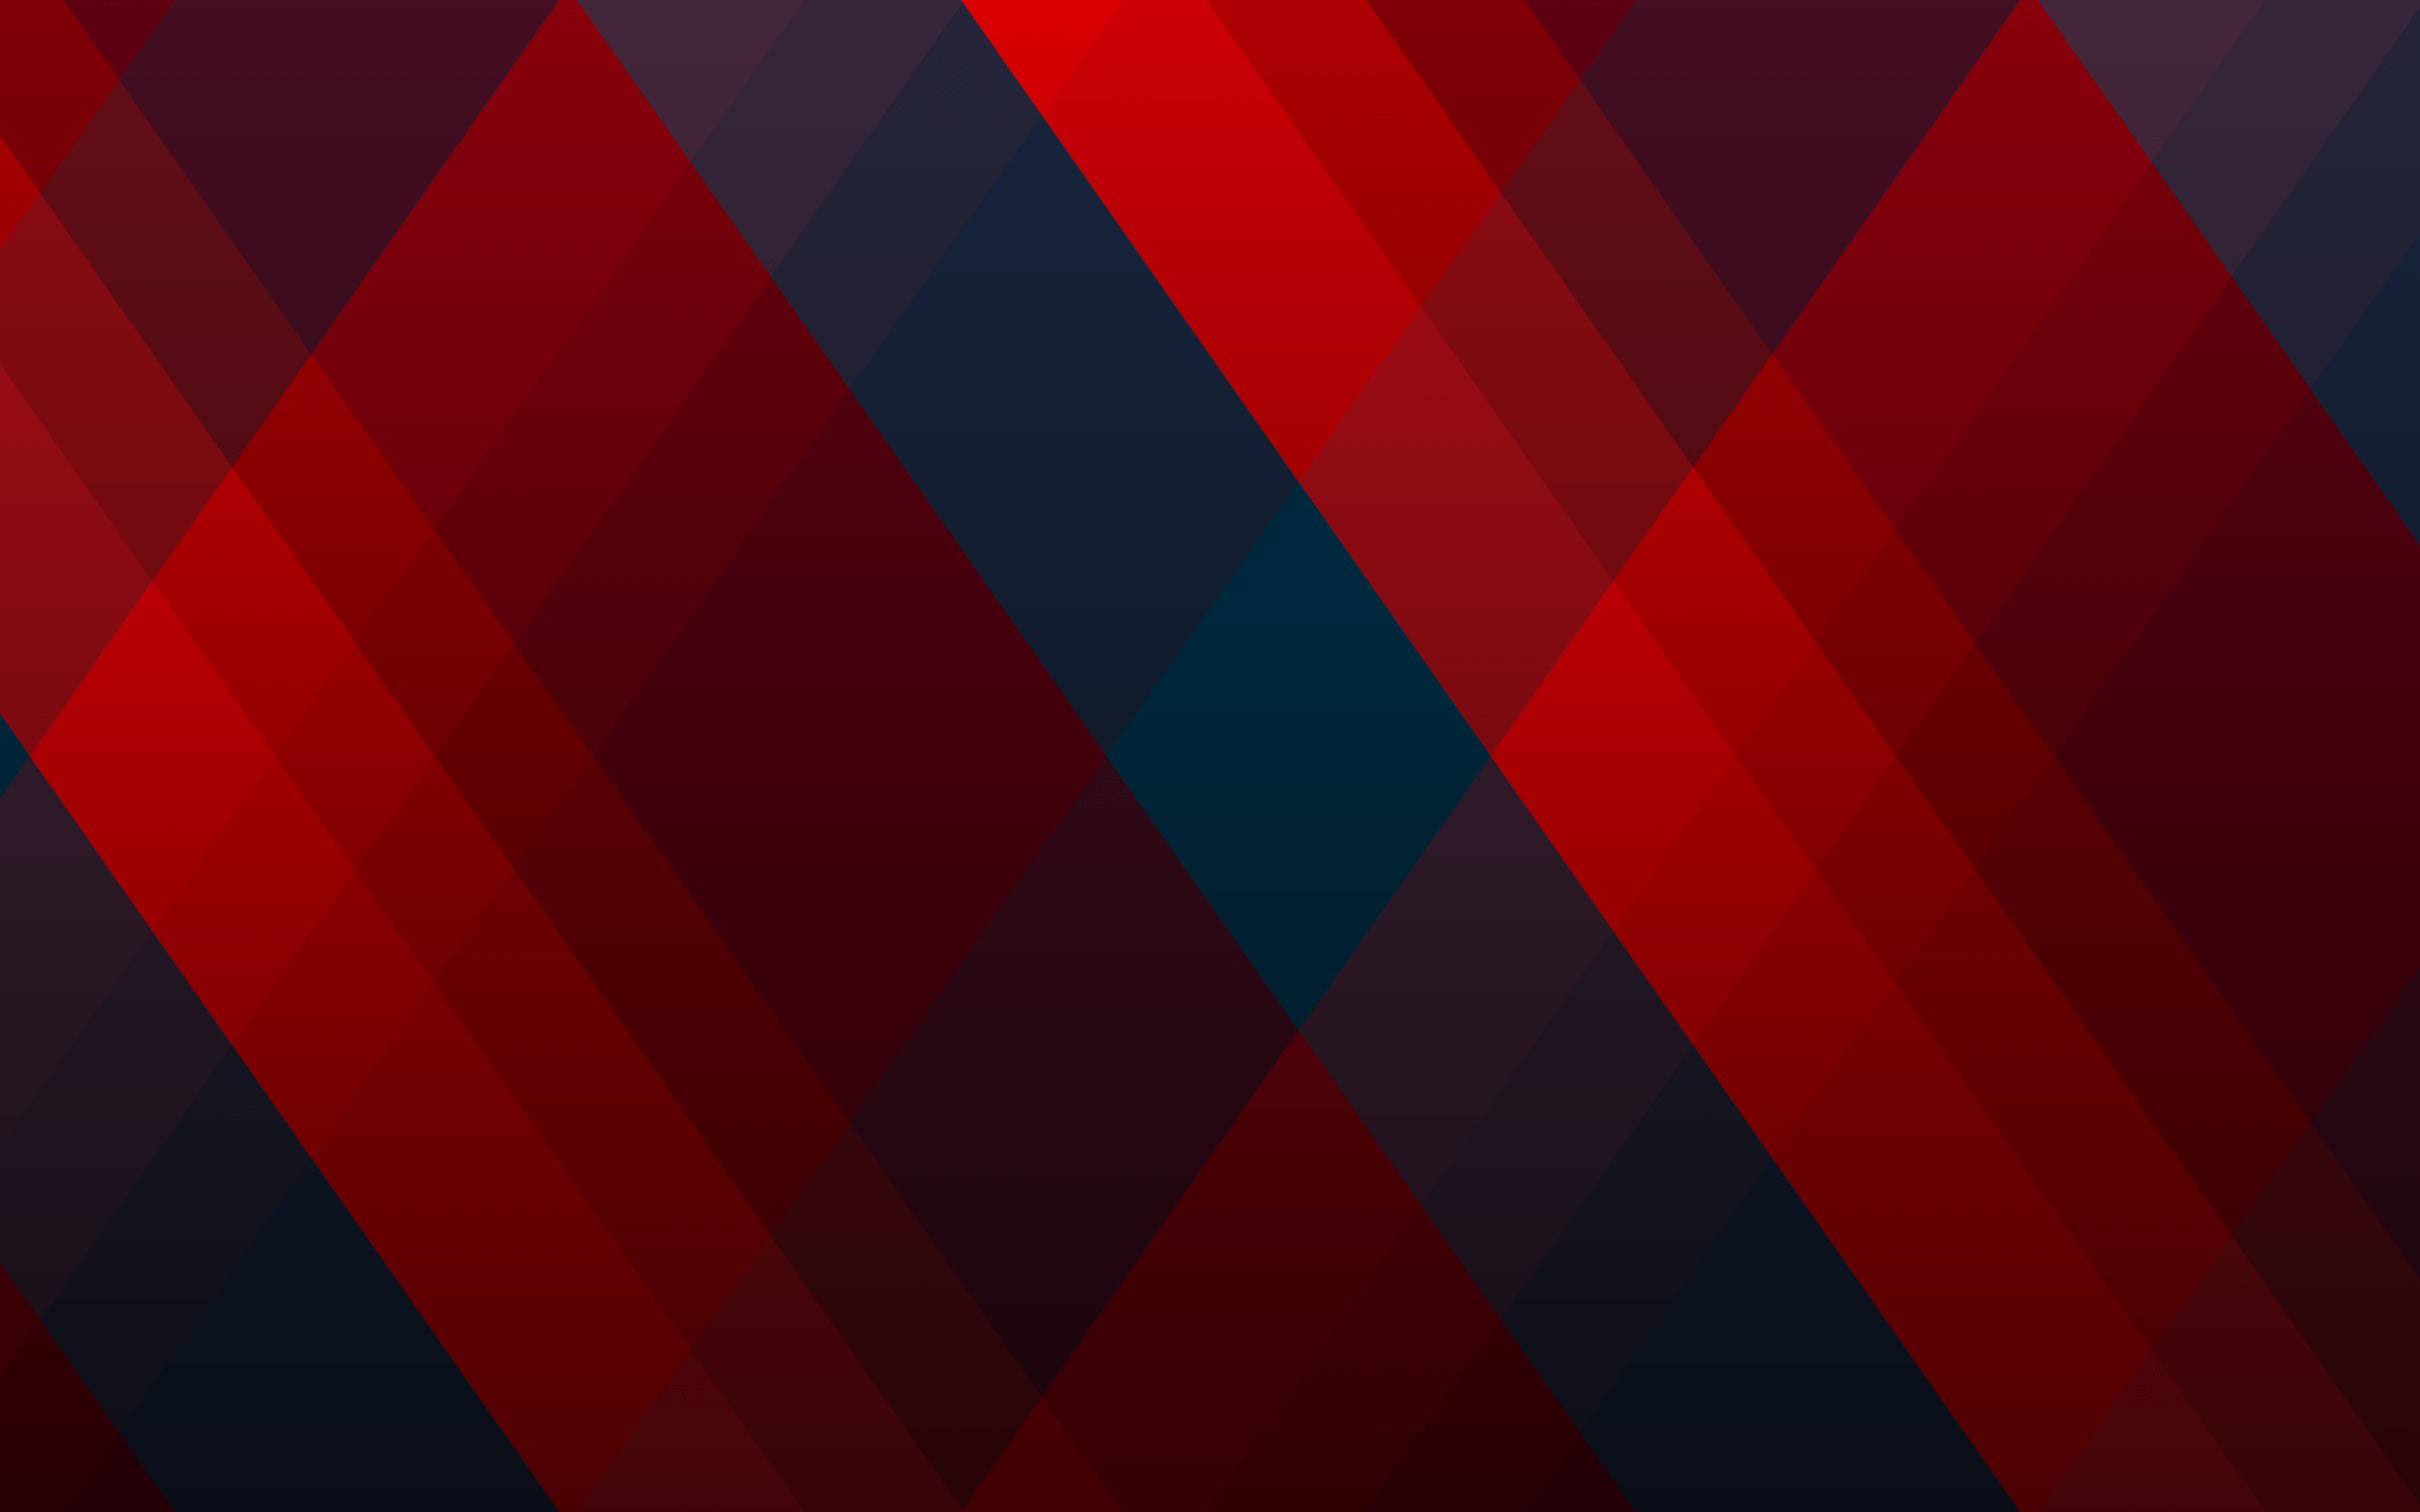 Hd Wallpaper Quotes For Android Download Abstract Pattern Wallpaper Gallery